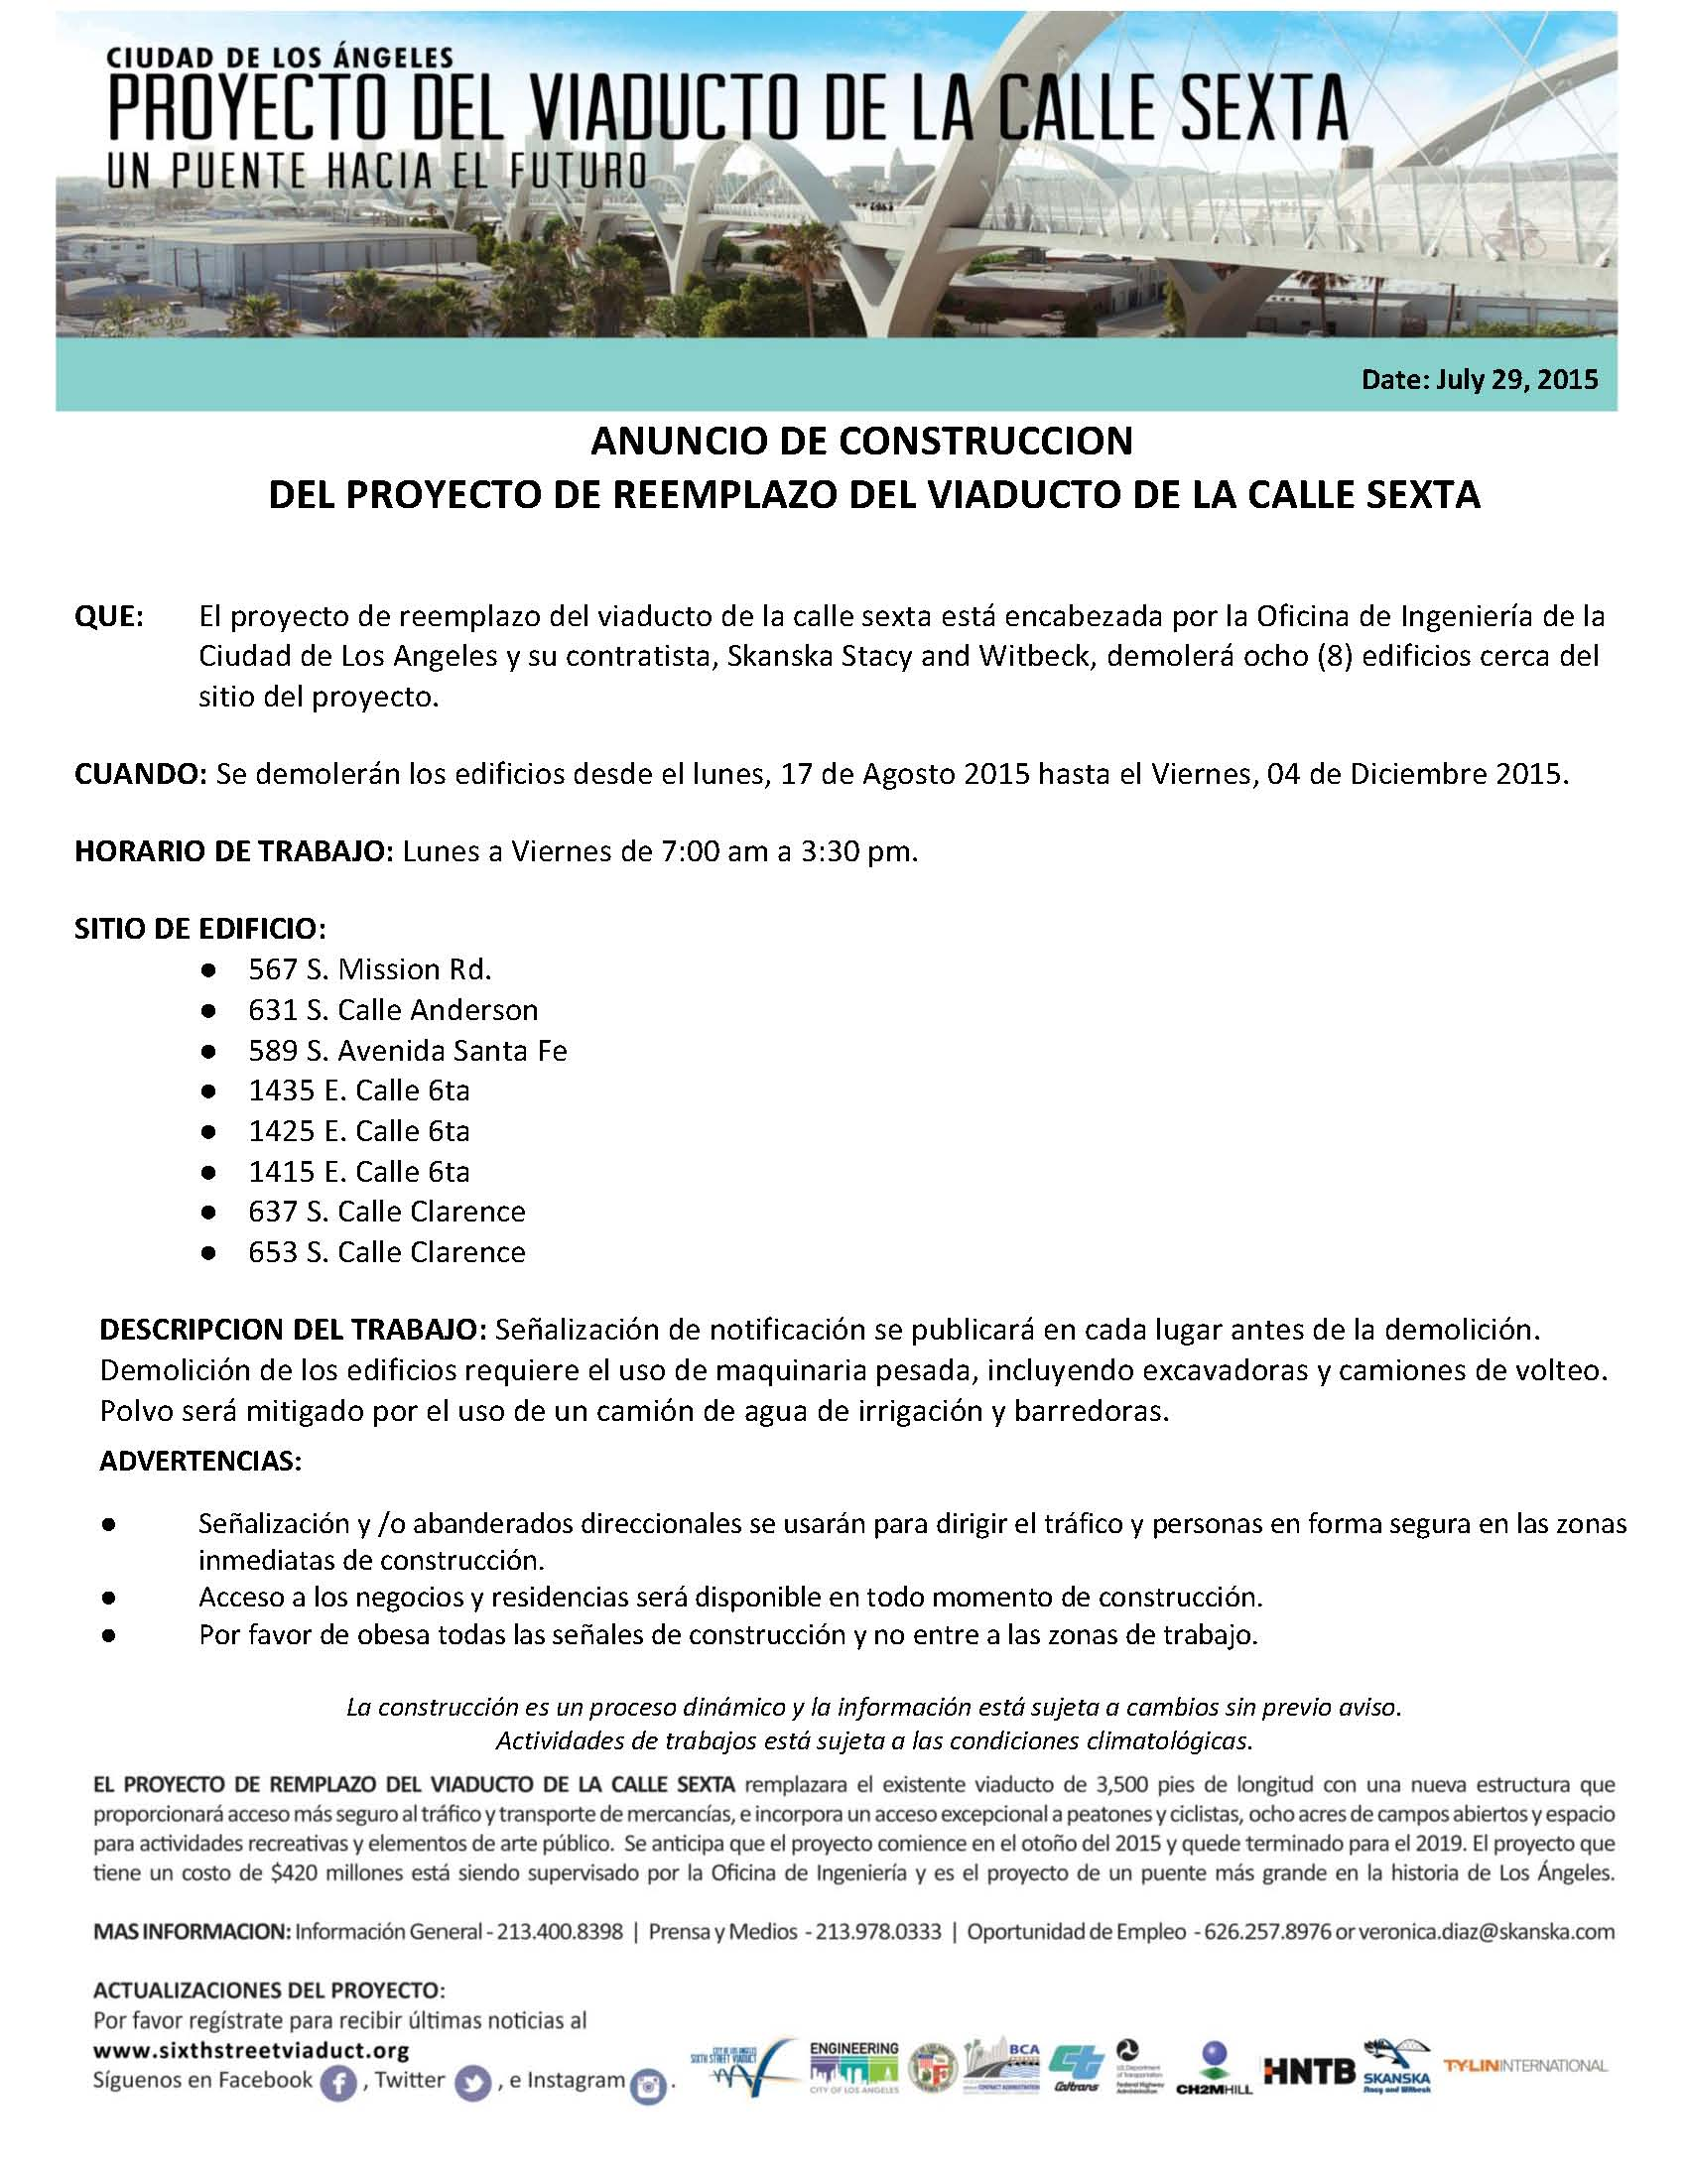 20150727_DRAFT_6thSt.ConstrctionNotice-BuildingDemolition_Spanish-_revision_Page_1.jpg